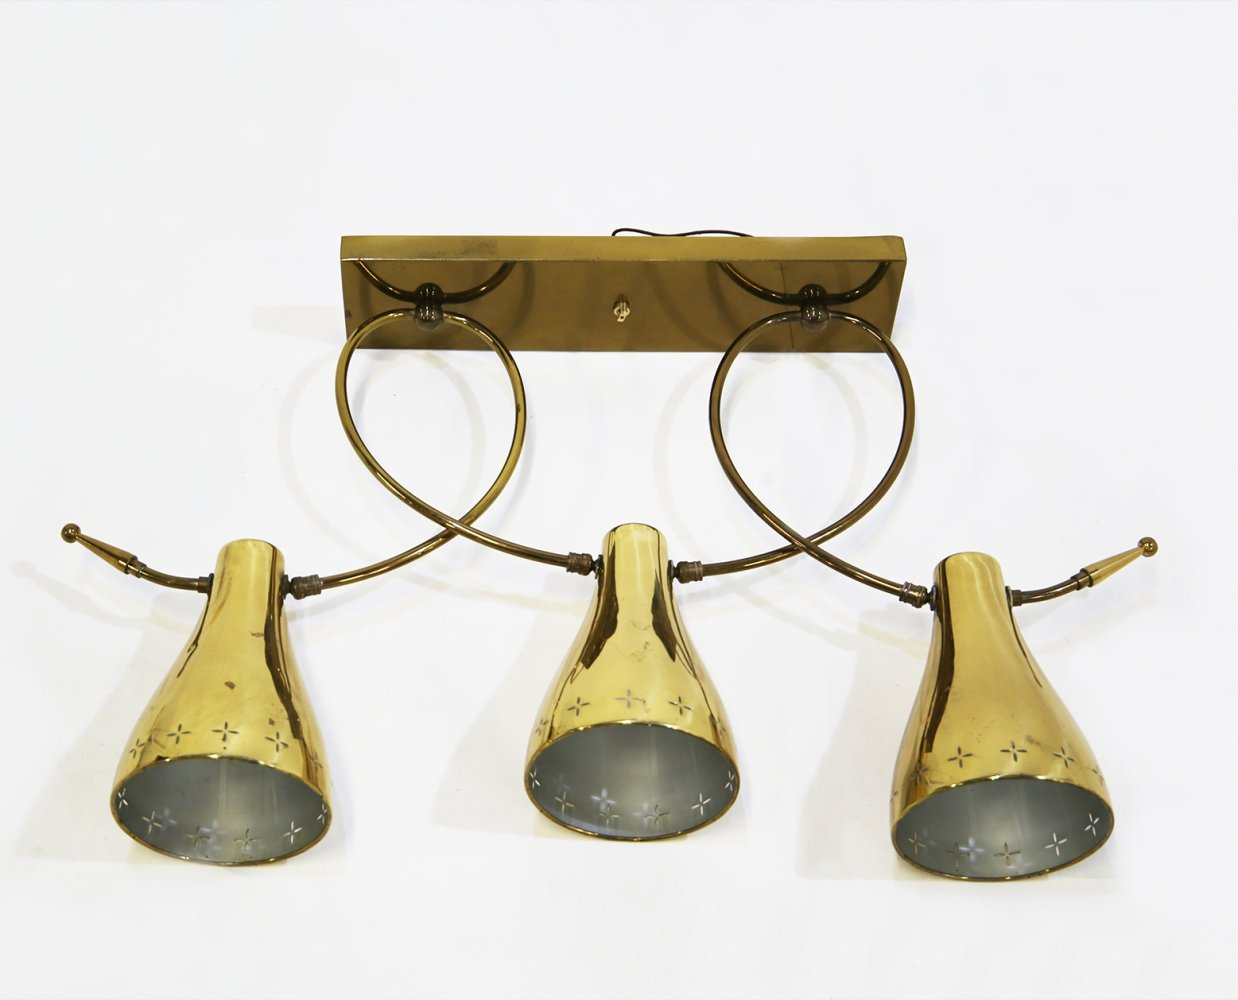 Pendant lamp in brass by Paavo Tynell for Lightolier, 1940s